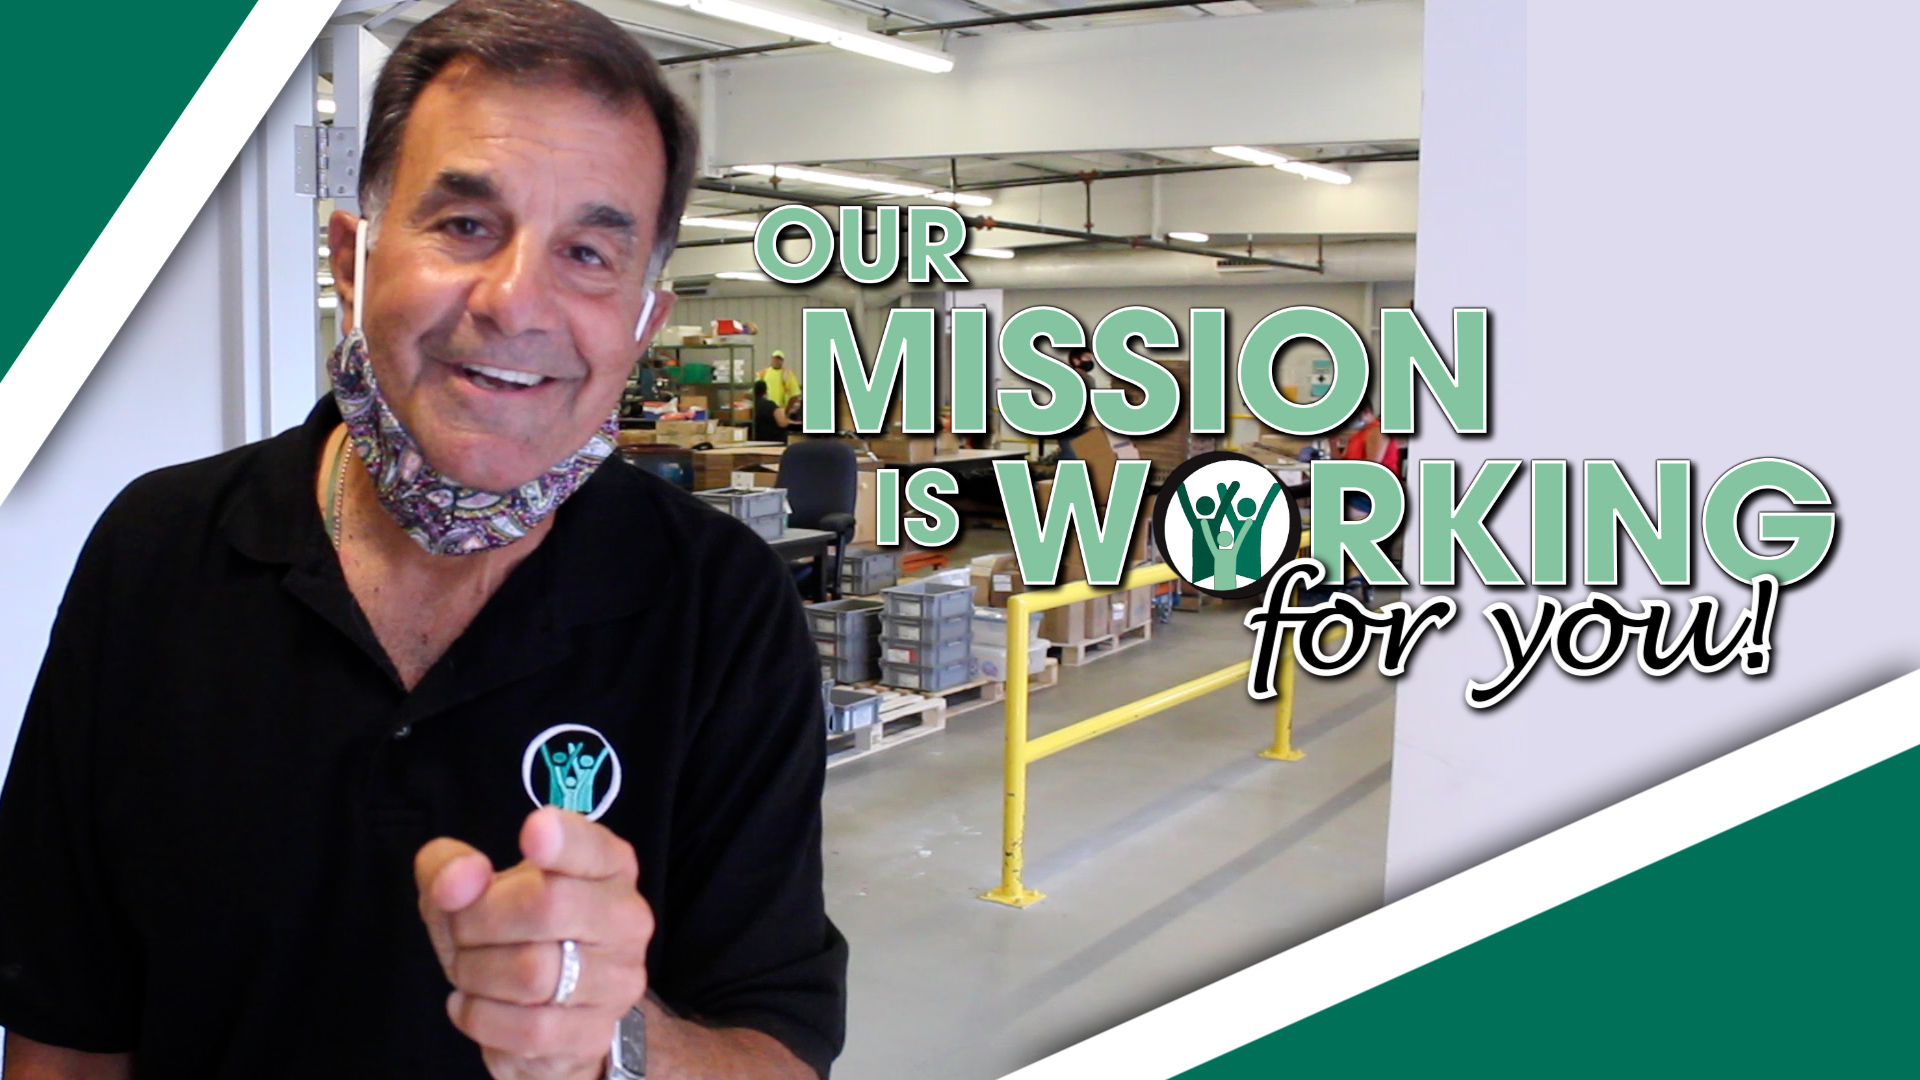 Our Mission is Working FOR YOU